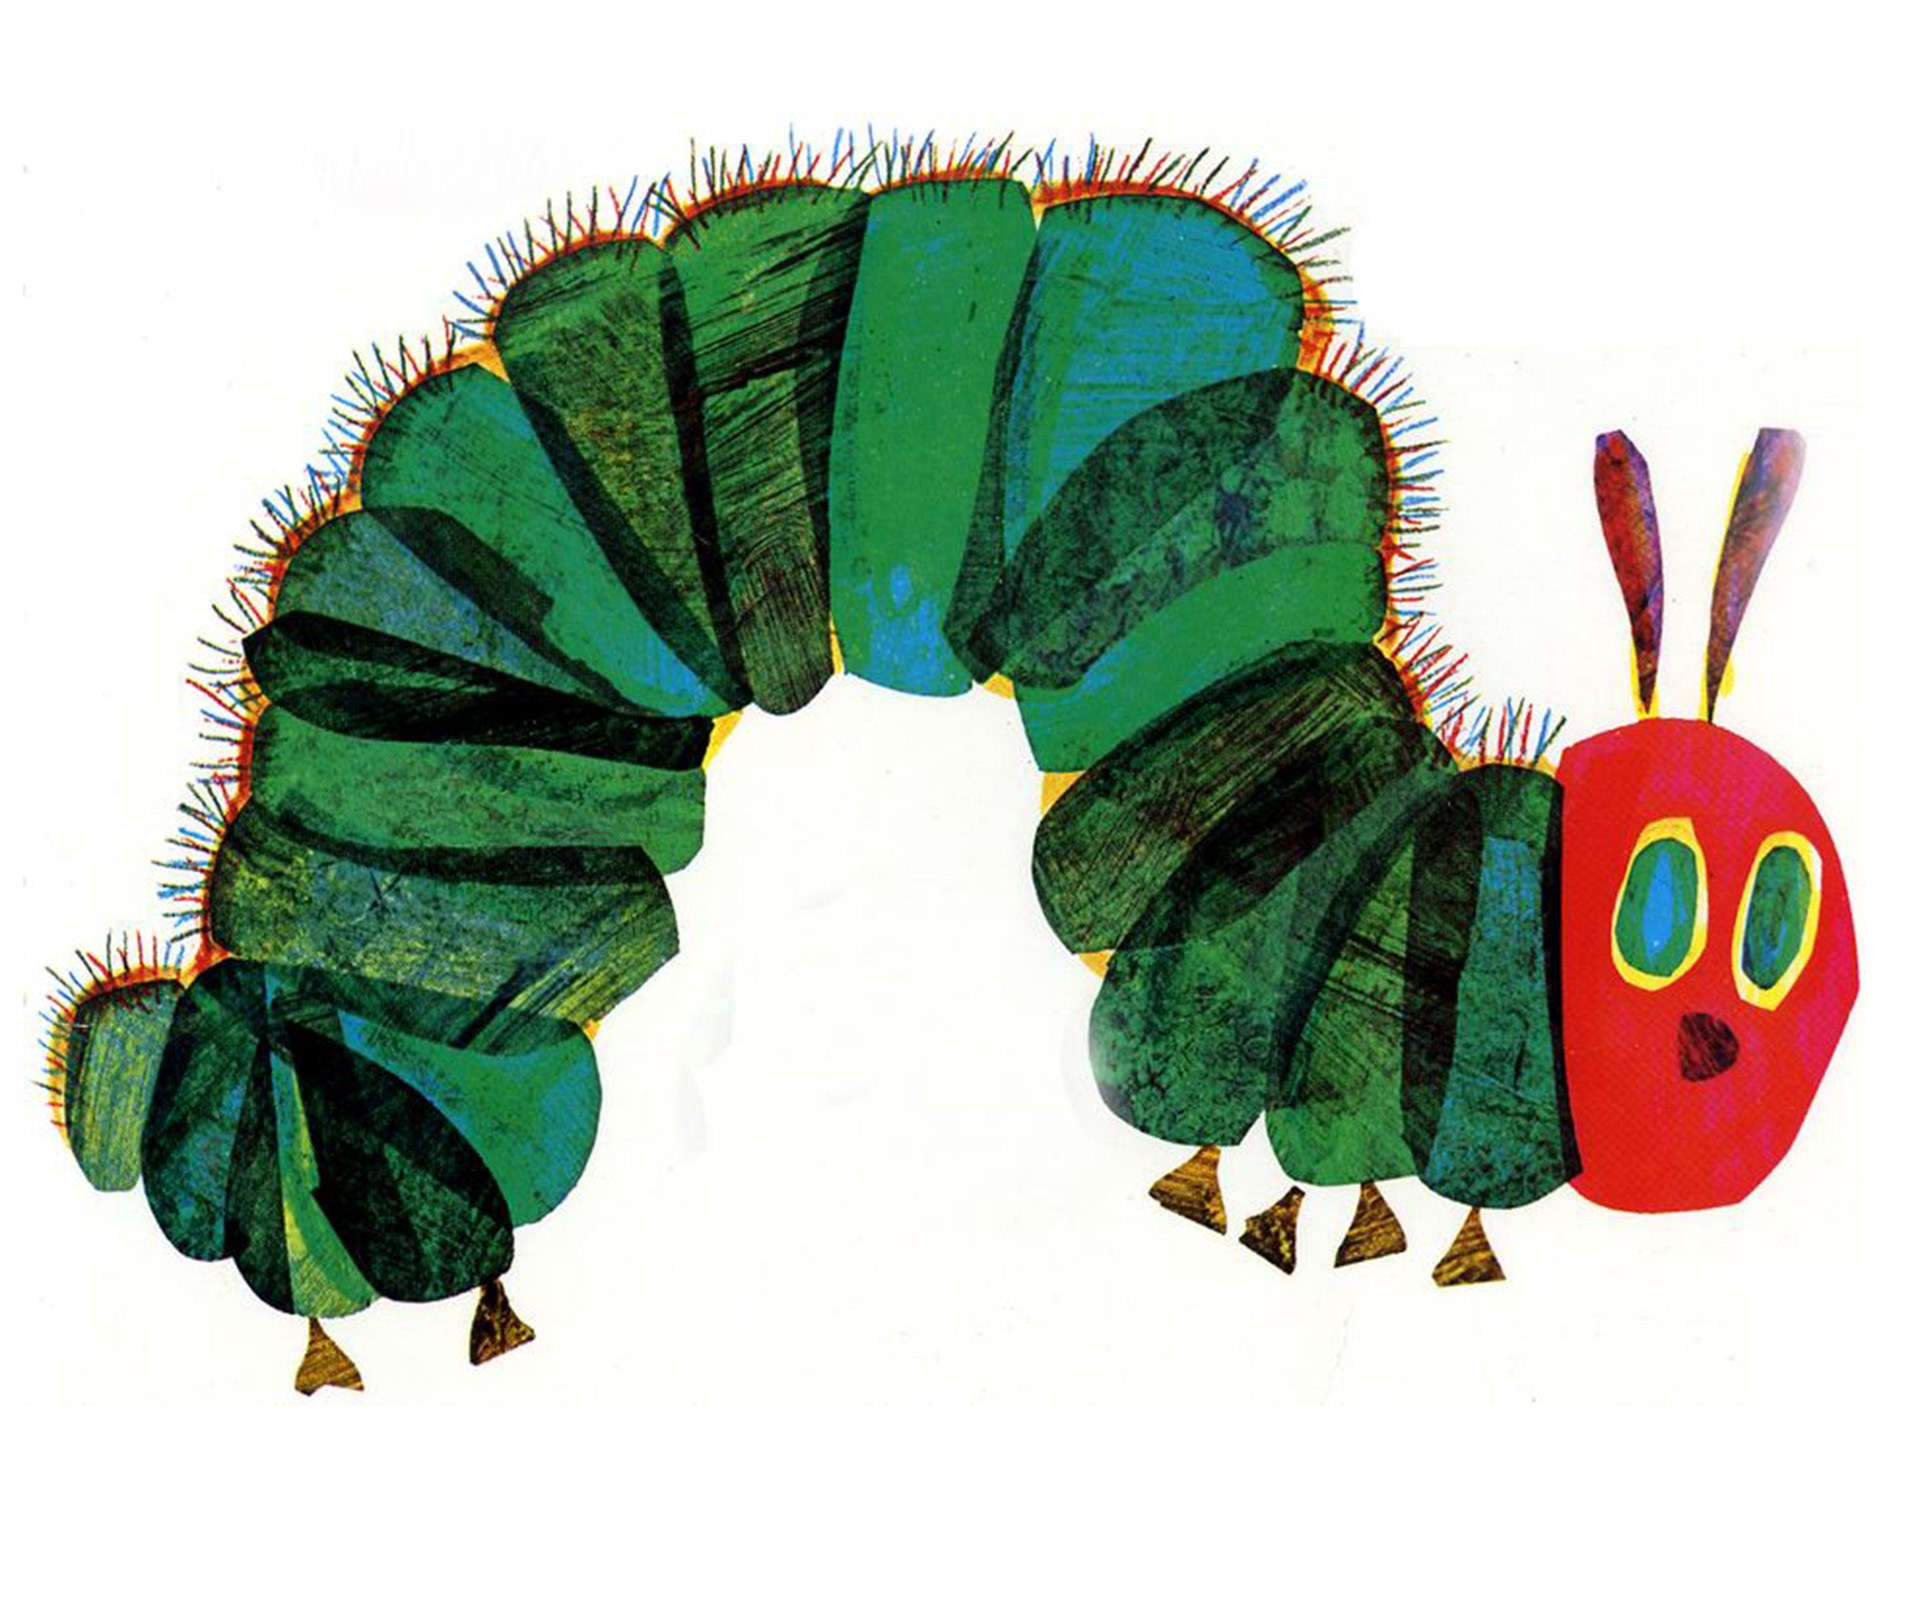 The Hungry Caterpillar made the cut, but it wasn't number one.